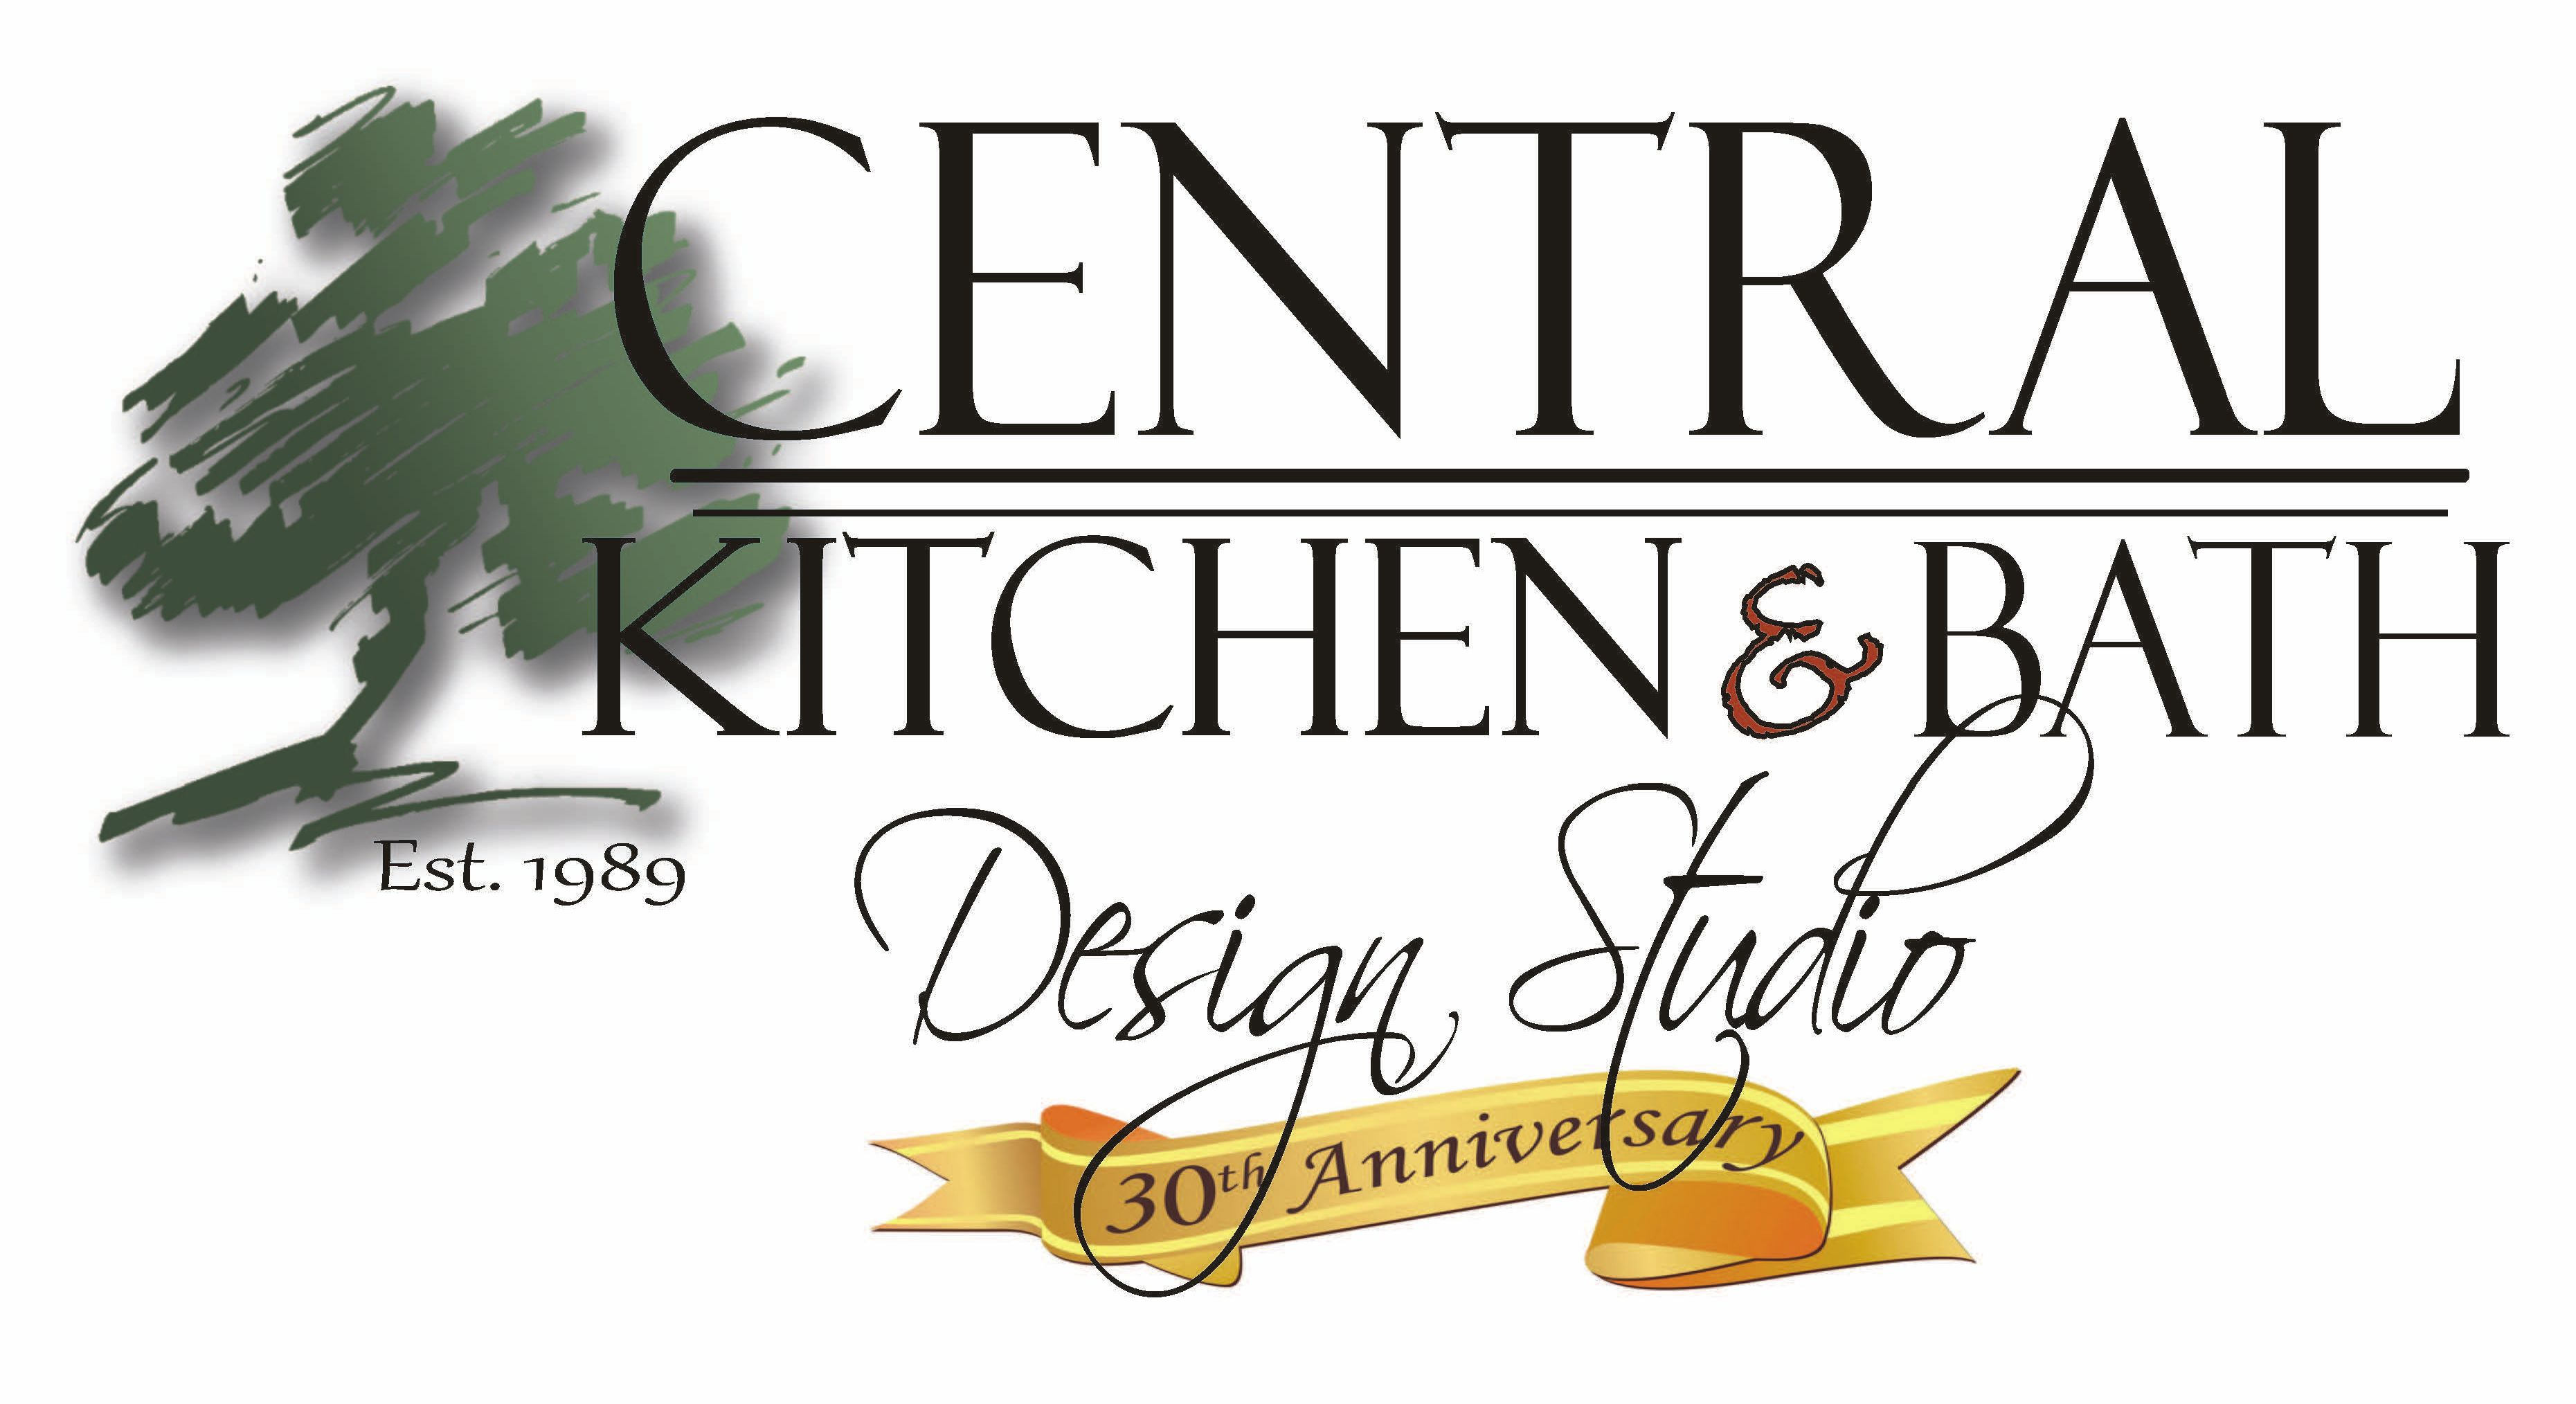 Central Kitchen & Bath